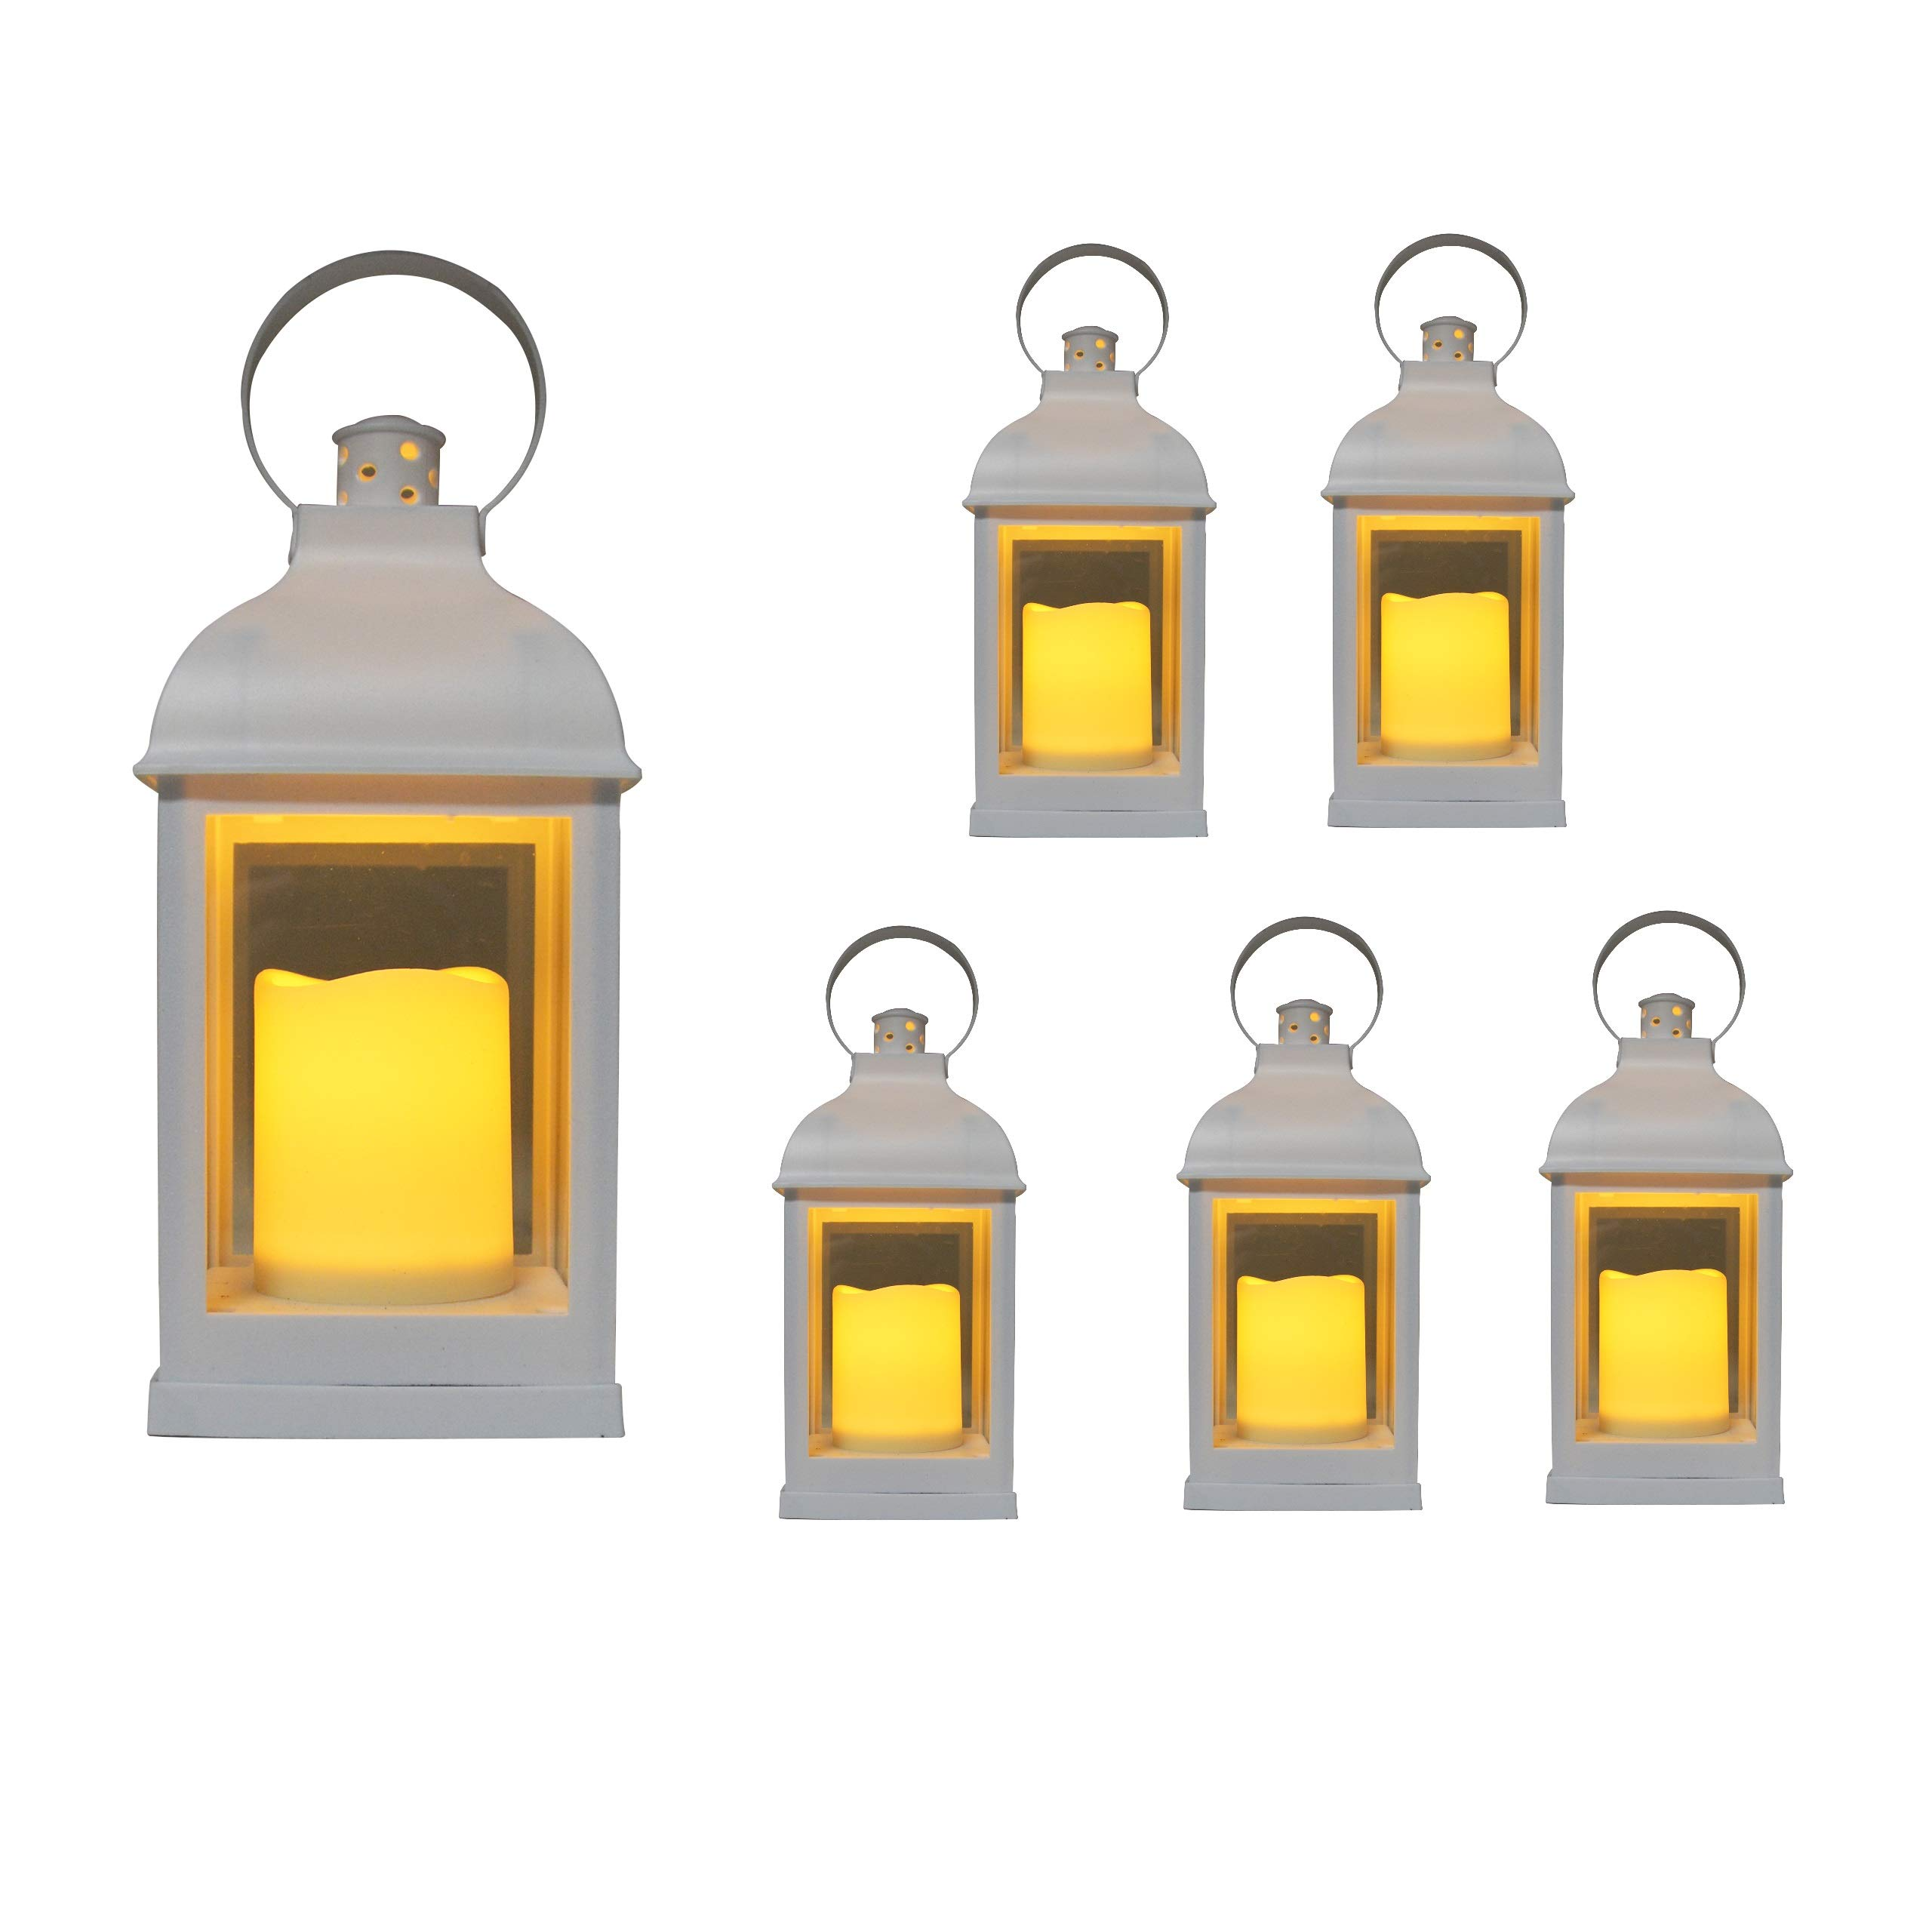 ''Just In Time for Spring'' {6pc Set} 10'' Decorative Lanterns + L E D Lighted Candle w/ Flickering + 5 Hr Timer Antique Looking for Indoor Ambient Home, Outdoor Patio or Party Lights, Weddings - White